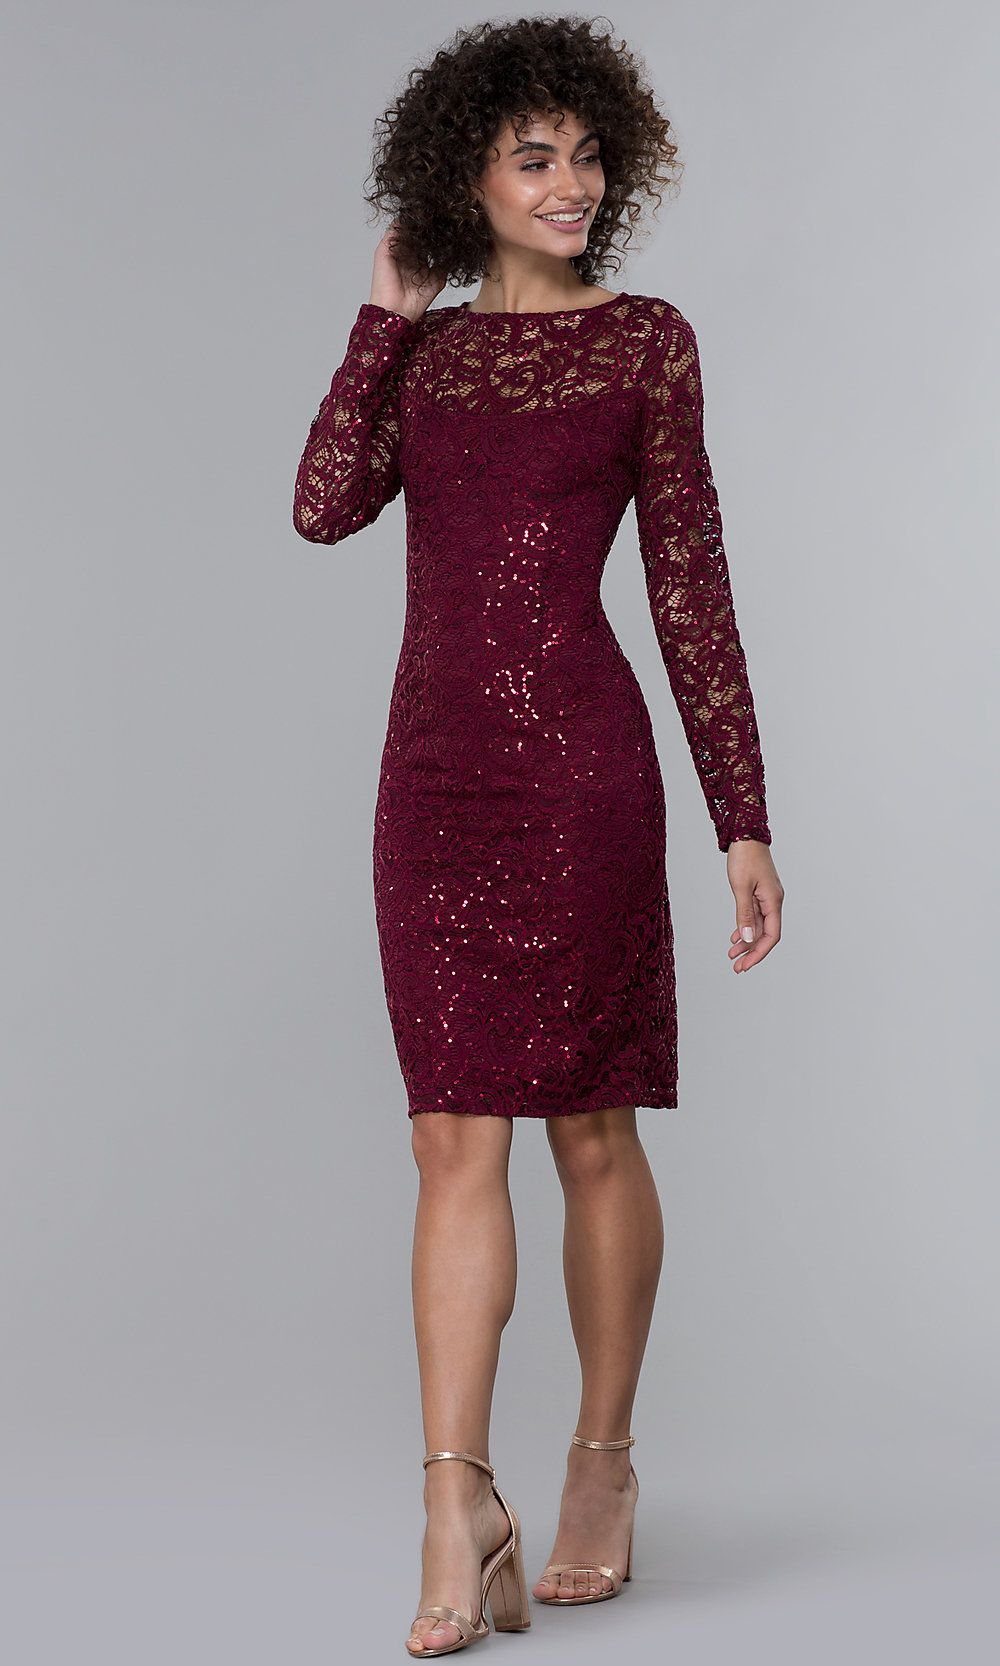 Longsleeve sequinlace short wine red party dress in 2020